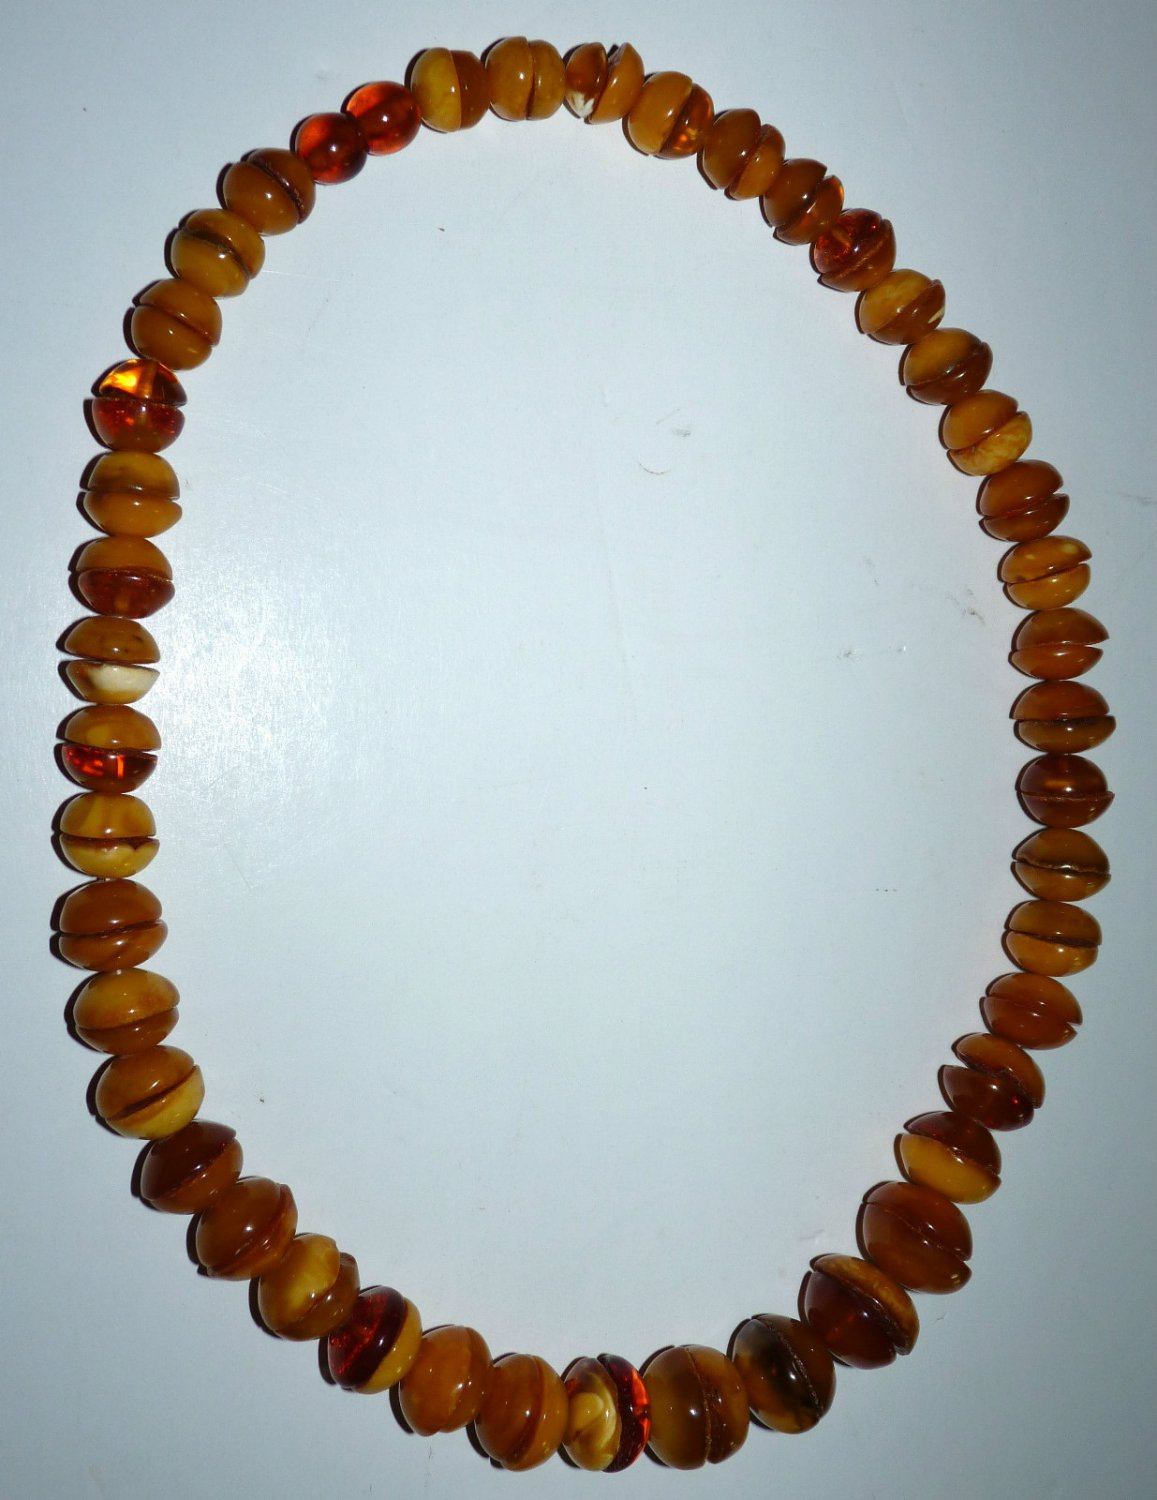 OOAK Vtg 111.5gr Genuine BALTIC AMBER Butterscotch+Egg Yolk Beads Necklace RARE